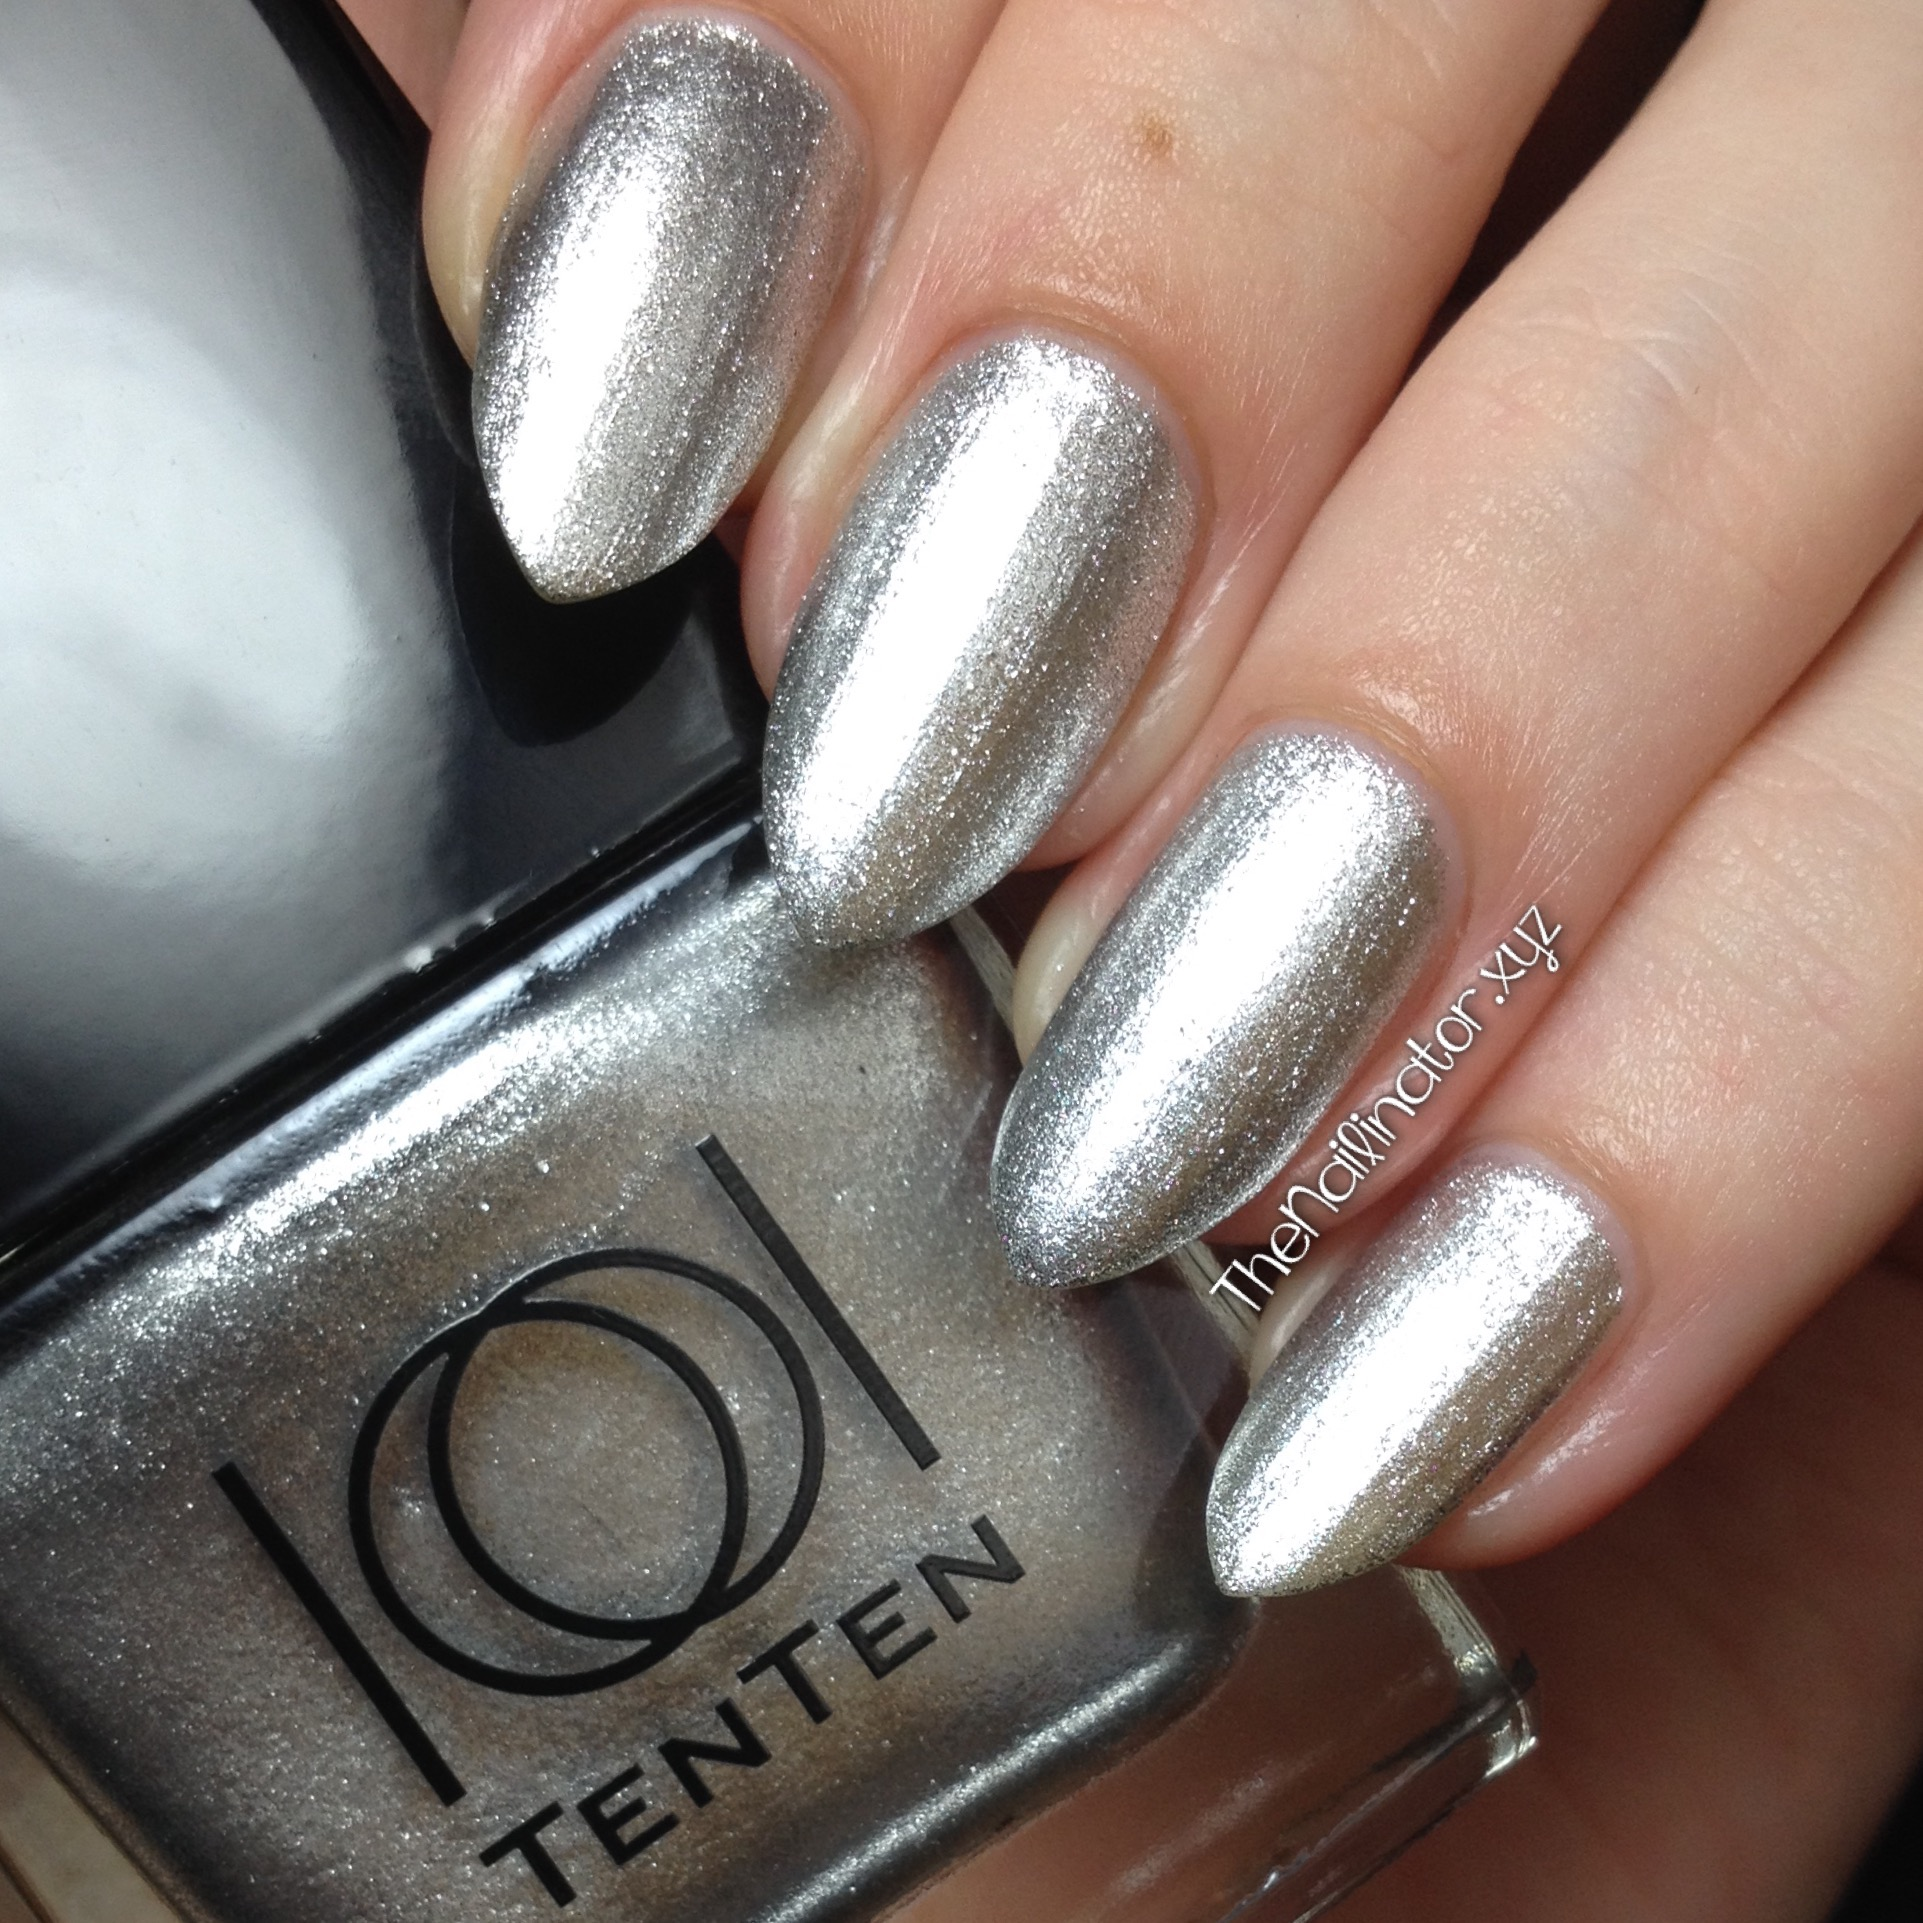 TenTen Nail Color Roman Holiday Collection Swatches | The Nailinator